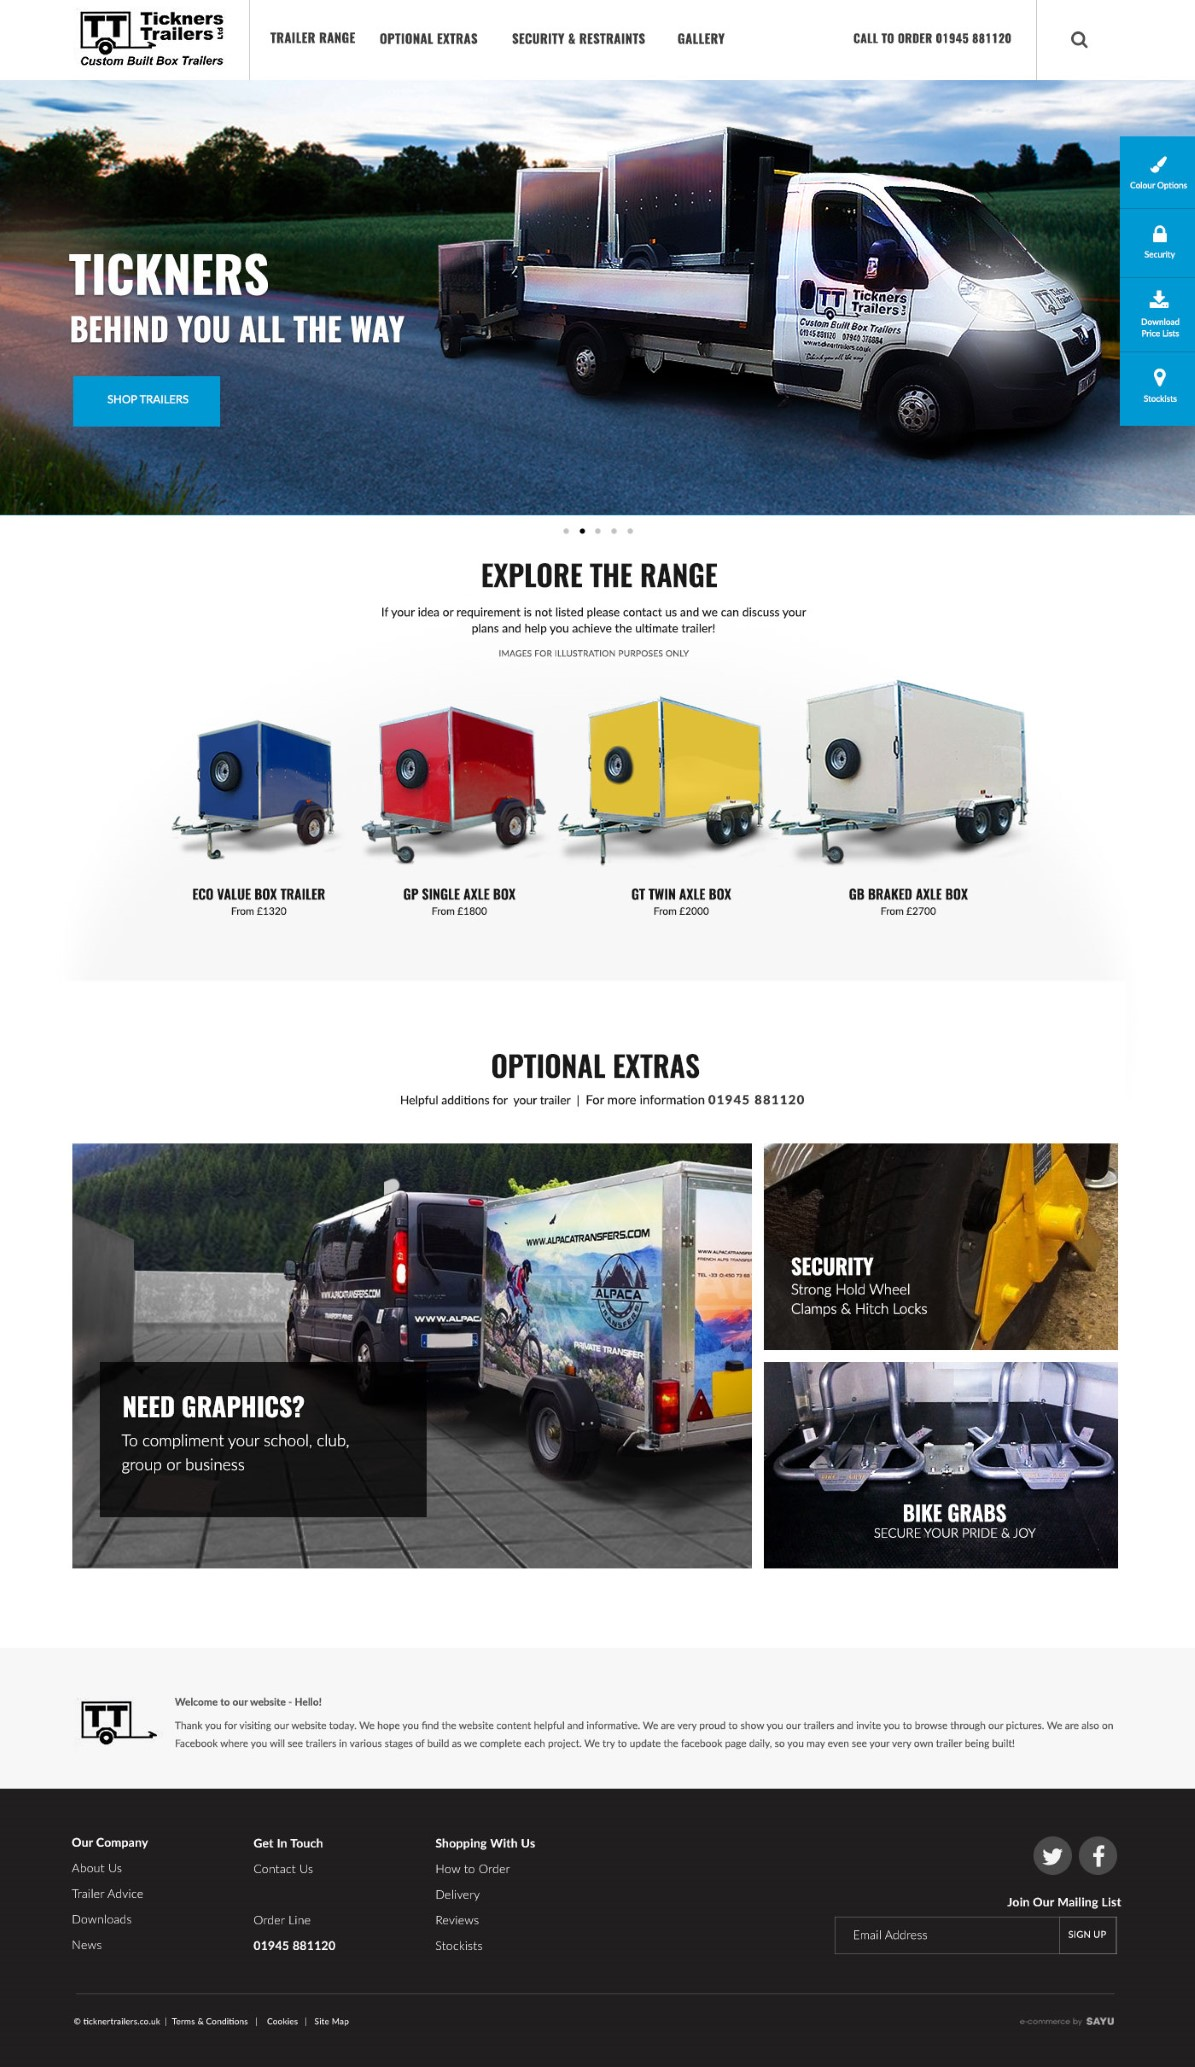 ticknertrailers.co.uk